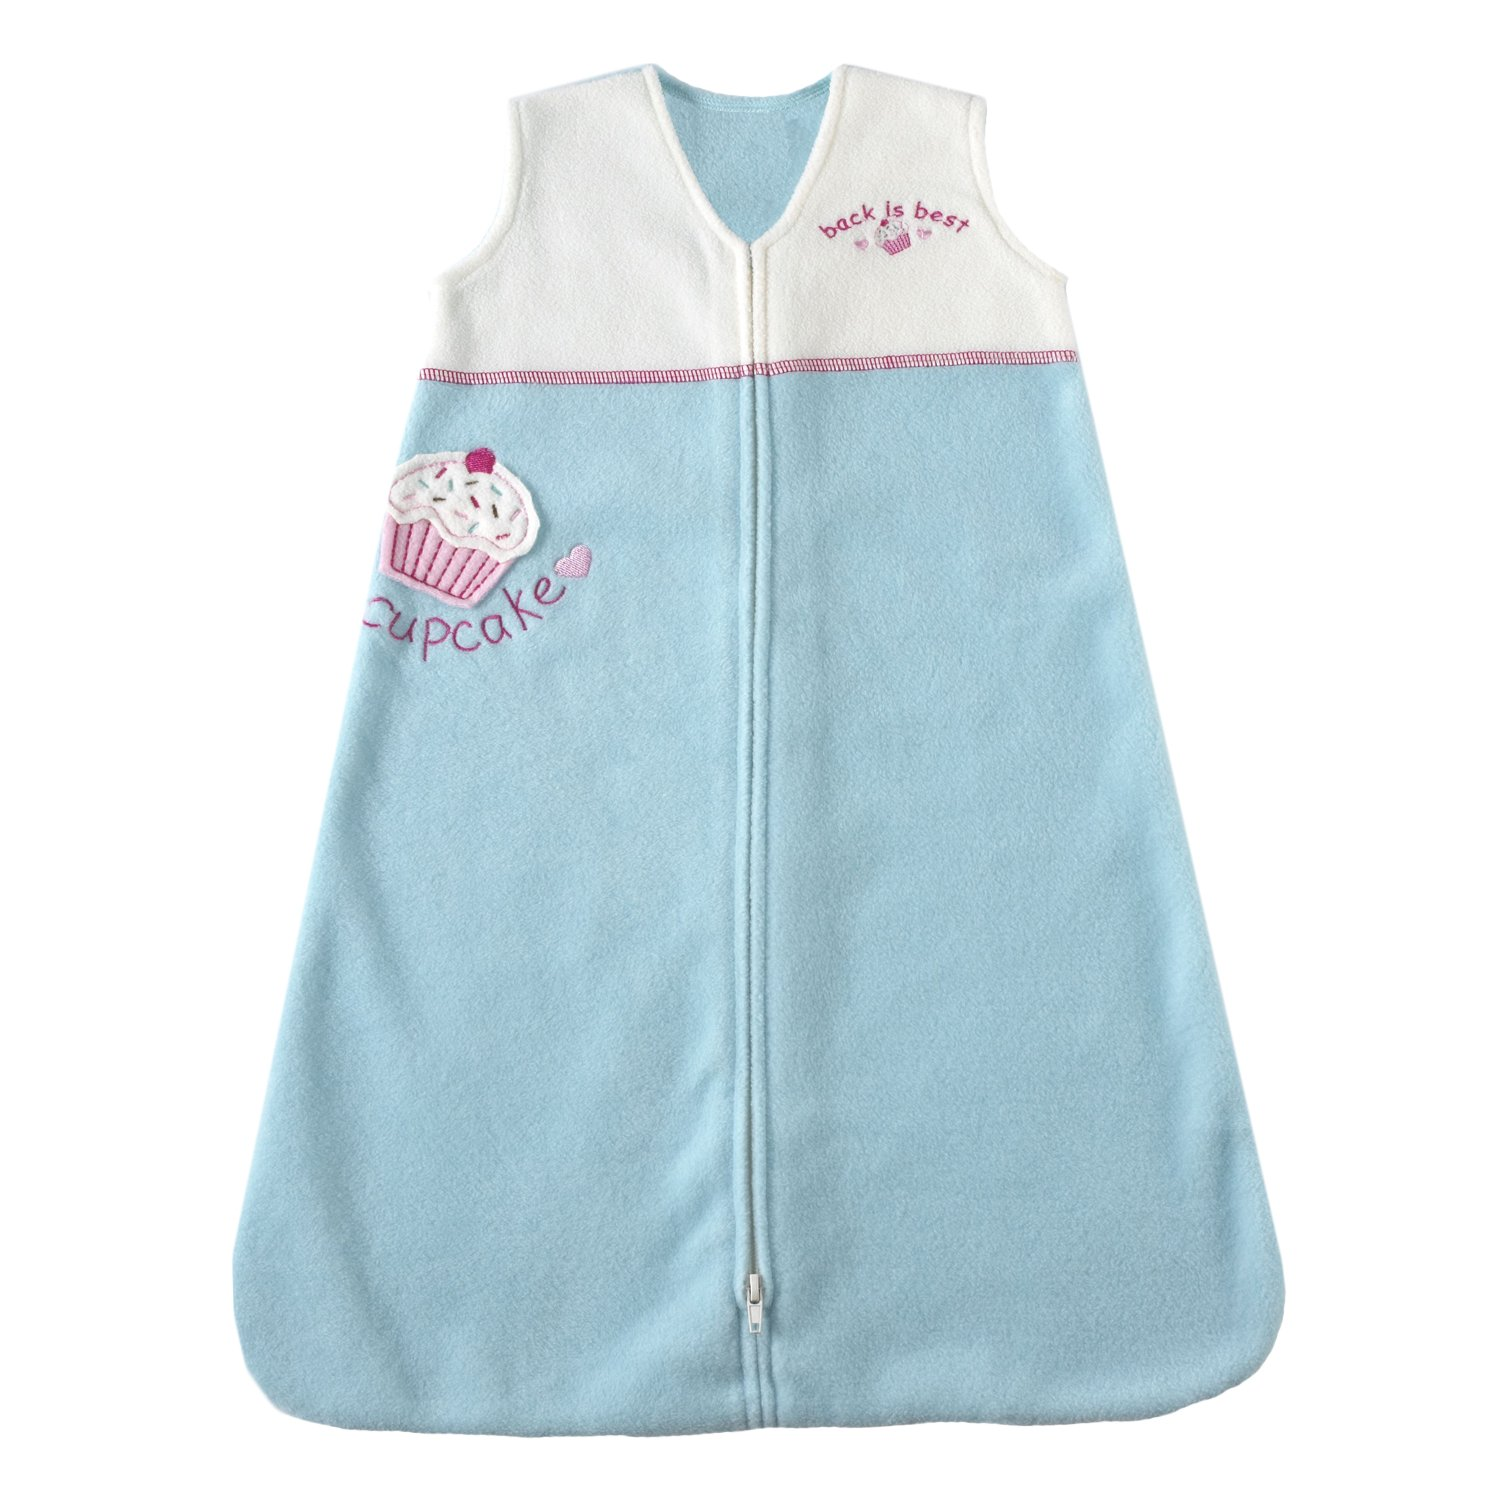 Amazon.com: HALO SleepSack Applique Micro-Fleece Wearable Blanket, Aqua, Small (Discontinued by Manufacturer): Baby